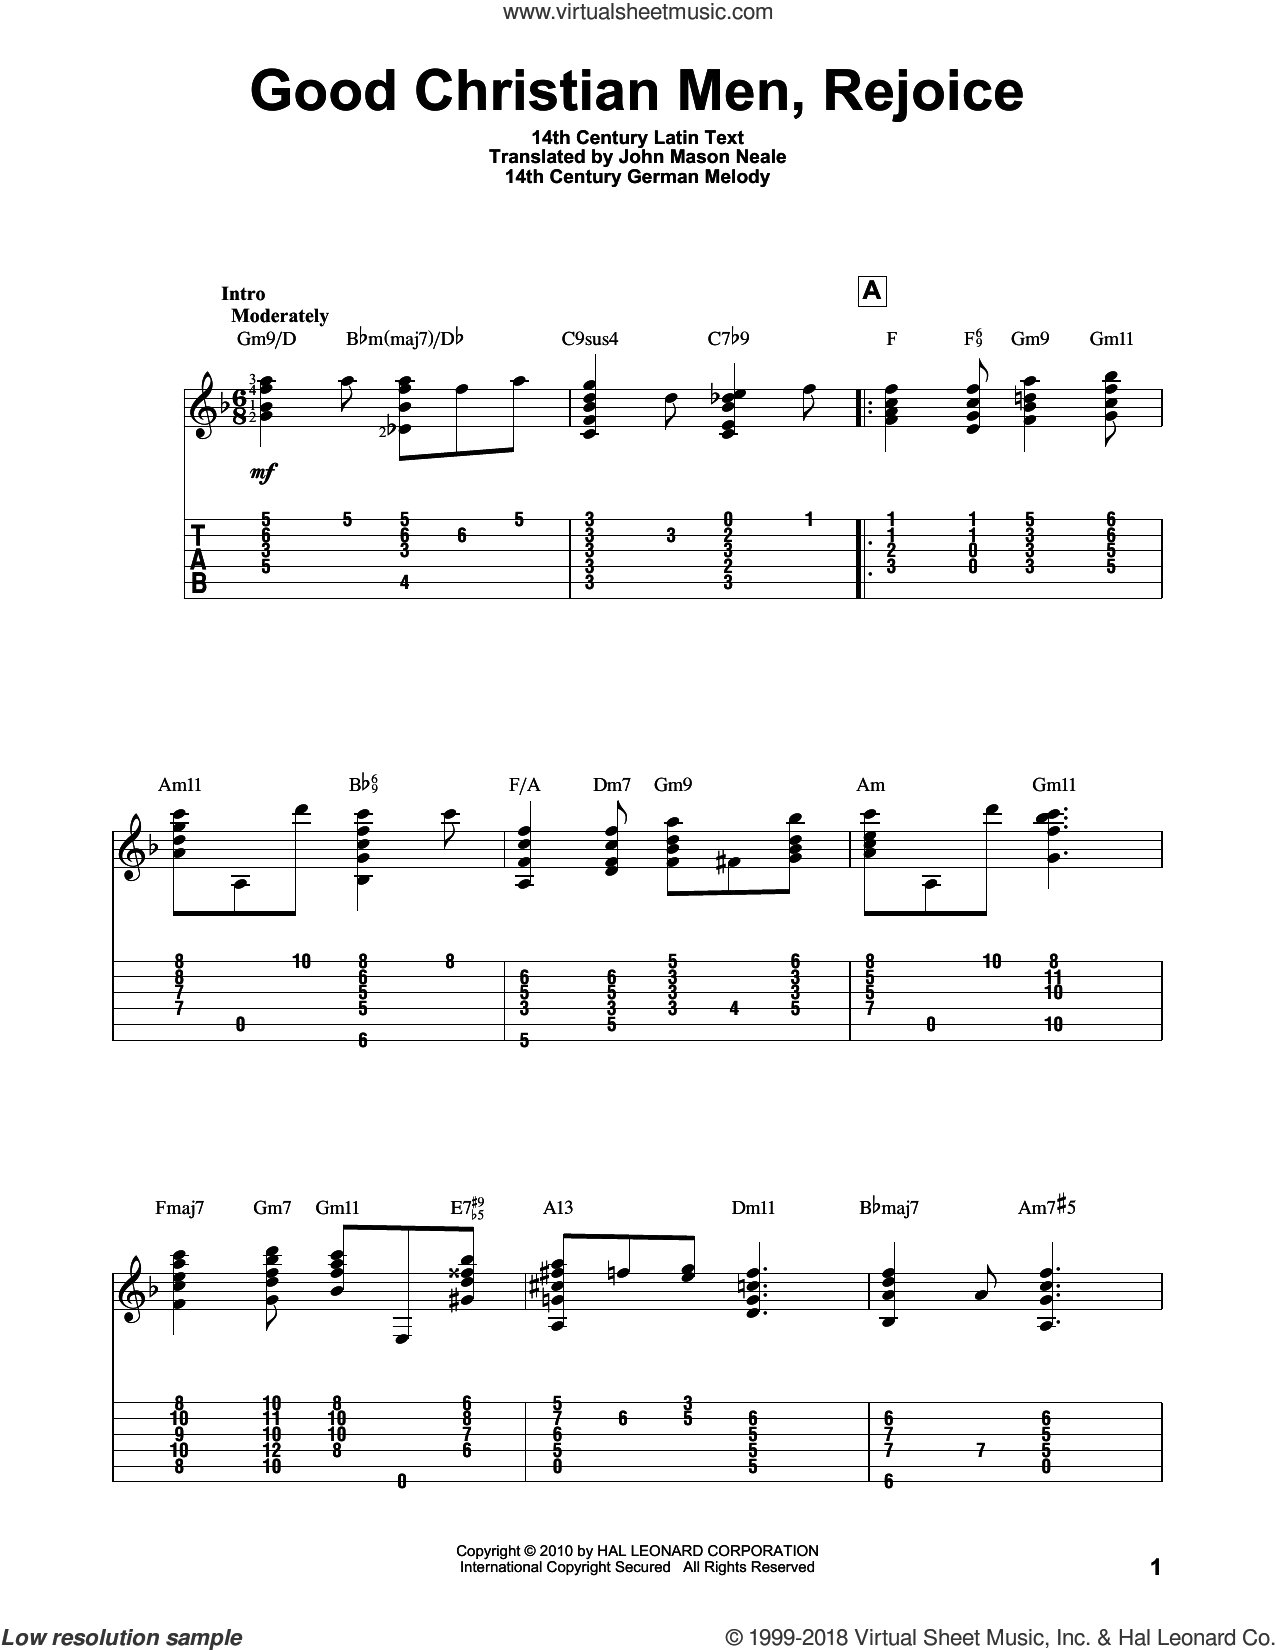 Good Christian Men, Rejoice sheet music for guitar solo by 14th Century German Melody